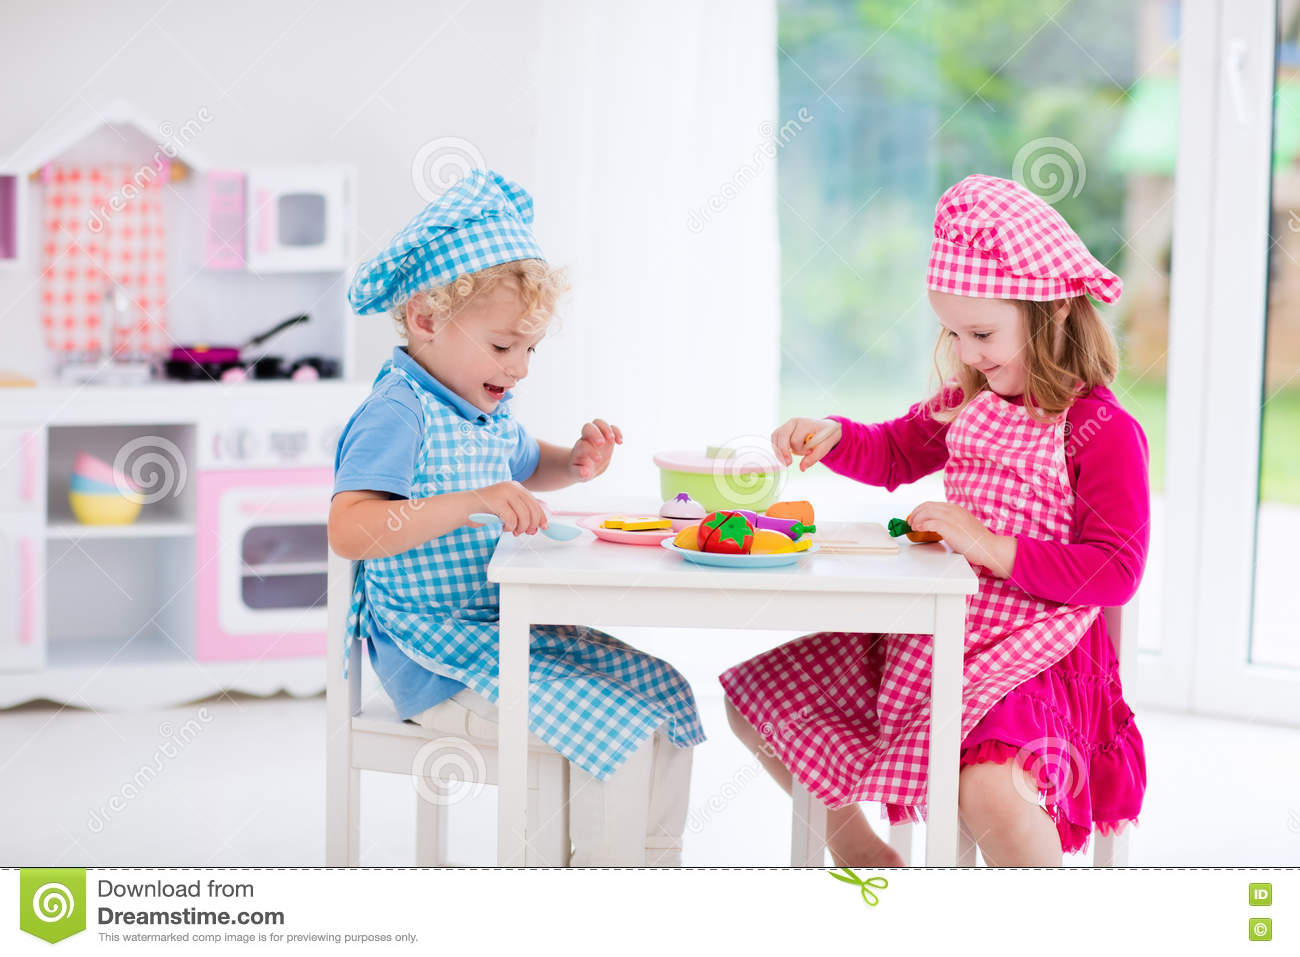 Kids playing with toy kitchen royalty free stock photo for Little girl kitchen playset